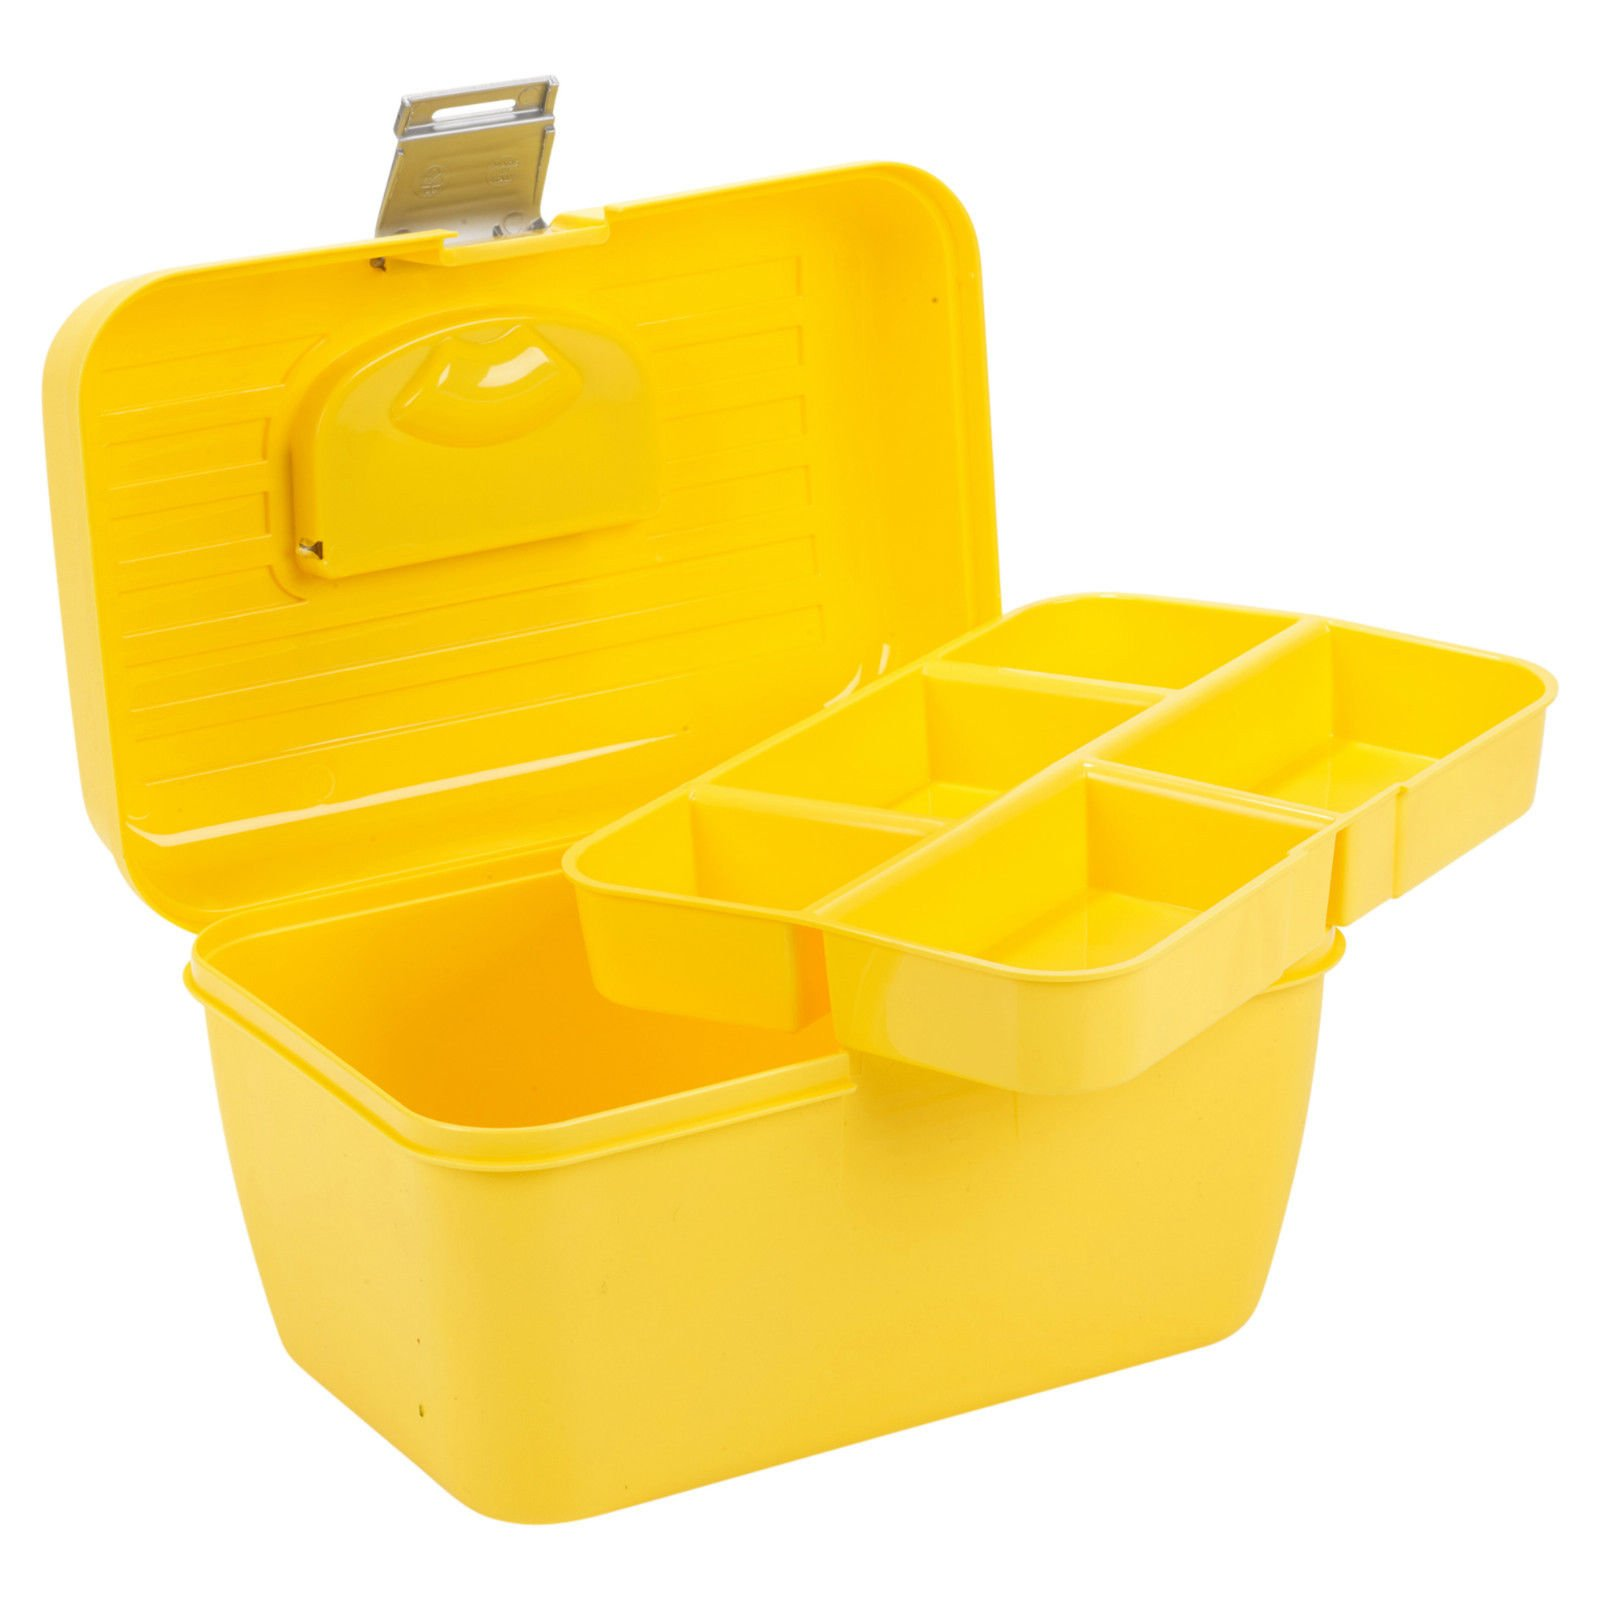 Easygift Products Storage Box With Removable Tray Carry Tool Case With Handle Multi Functional Organiser - Yellow